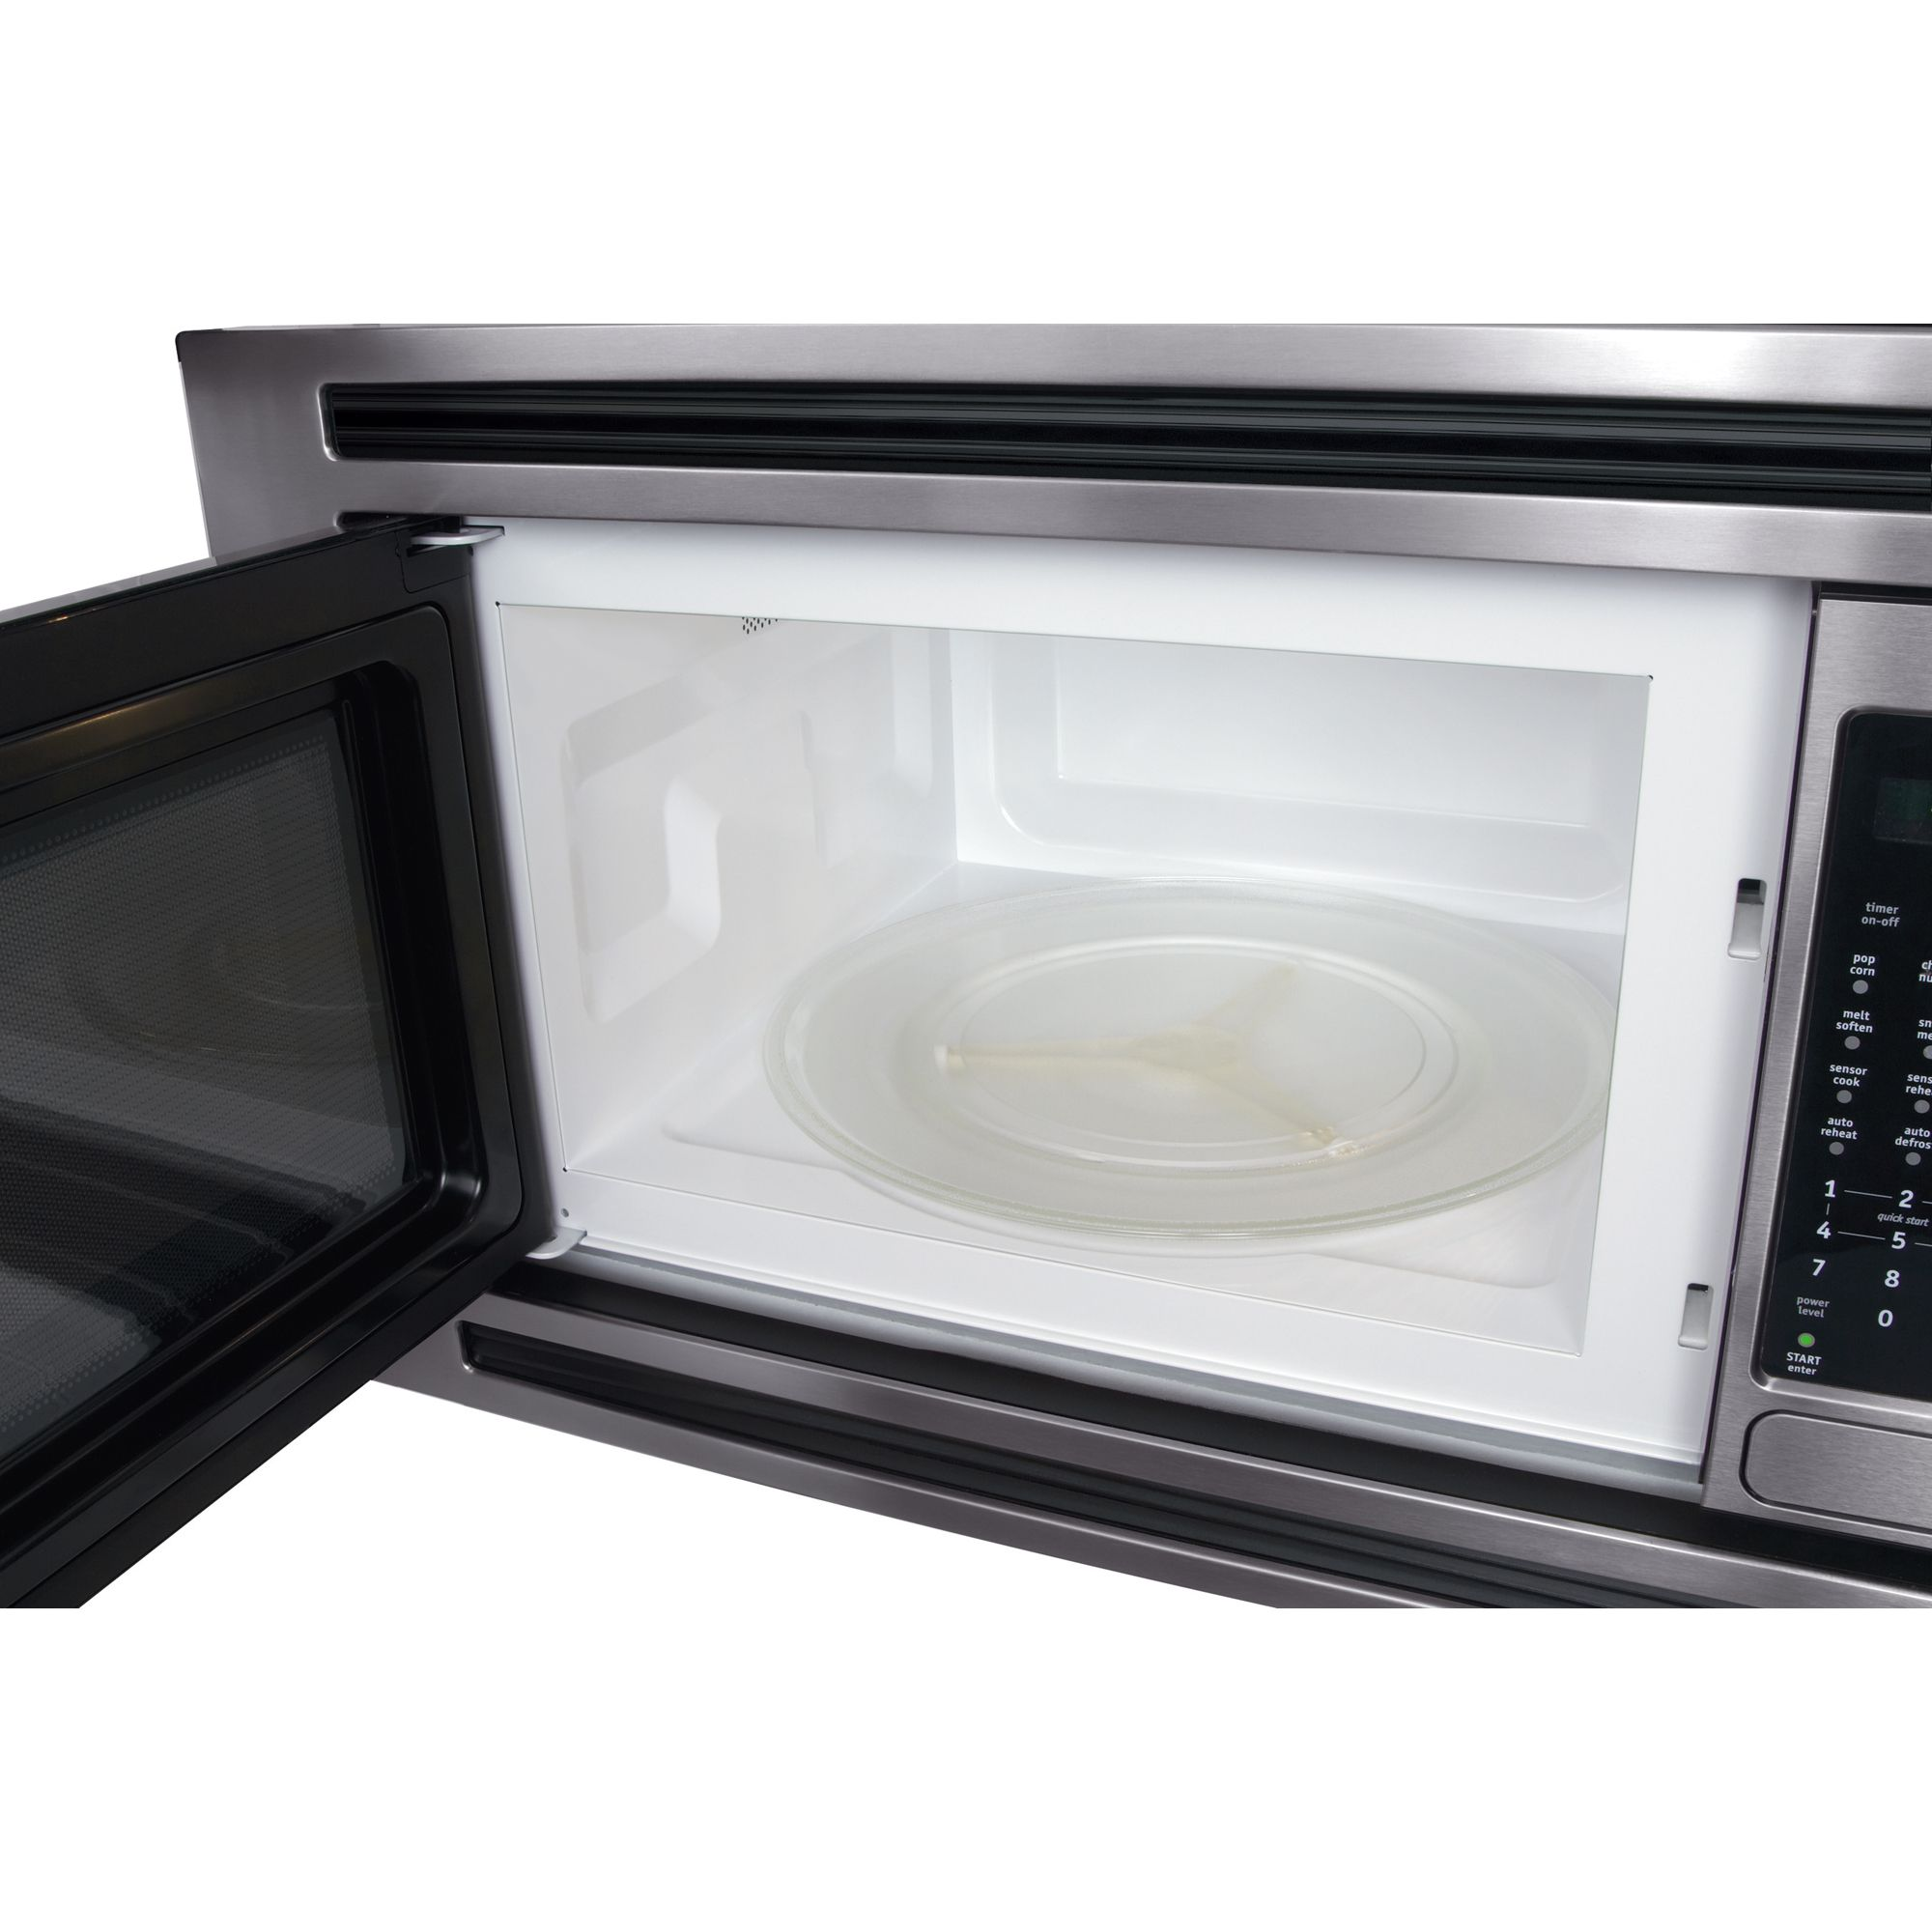 "Frigidaire Gallery FGMO205KF 24"" 2.0 cu. ft. Built-In Microwave Oven"